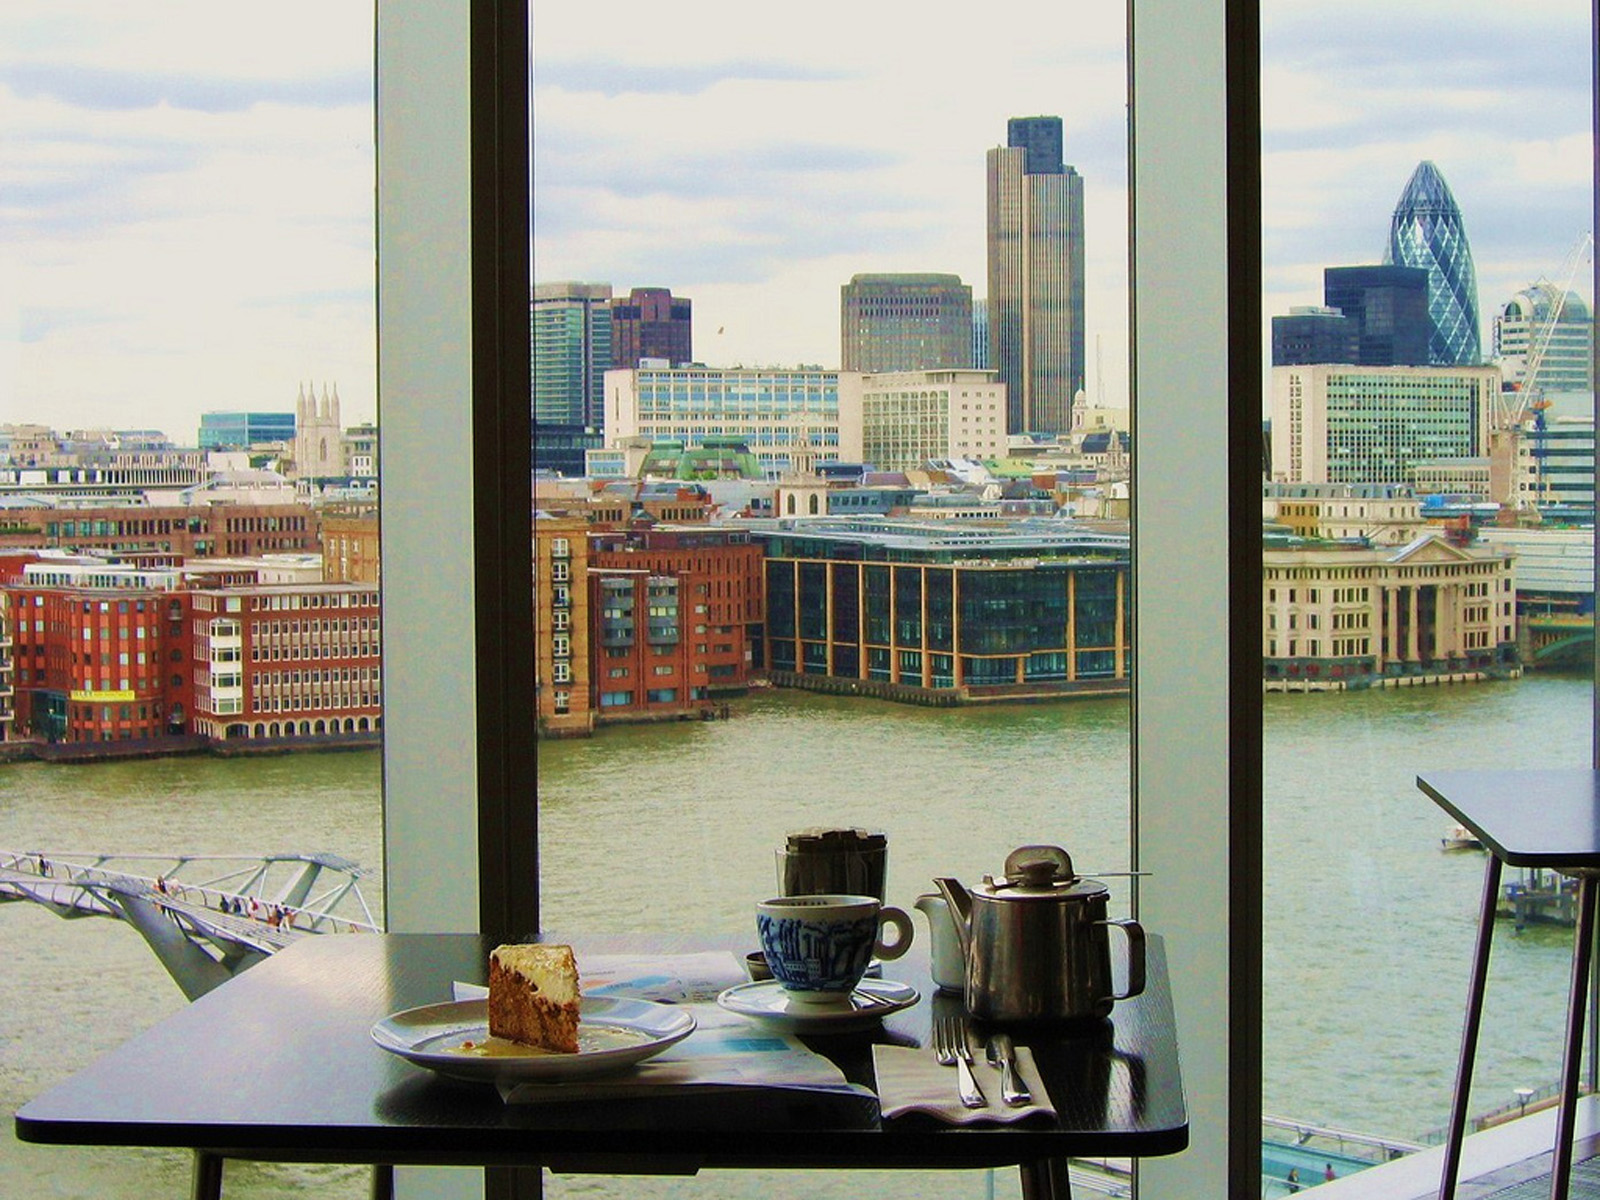 The view from restaurant at Tate Modern. London. England